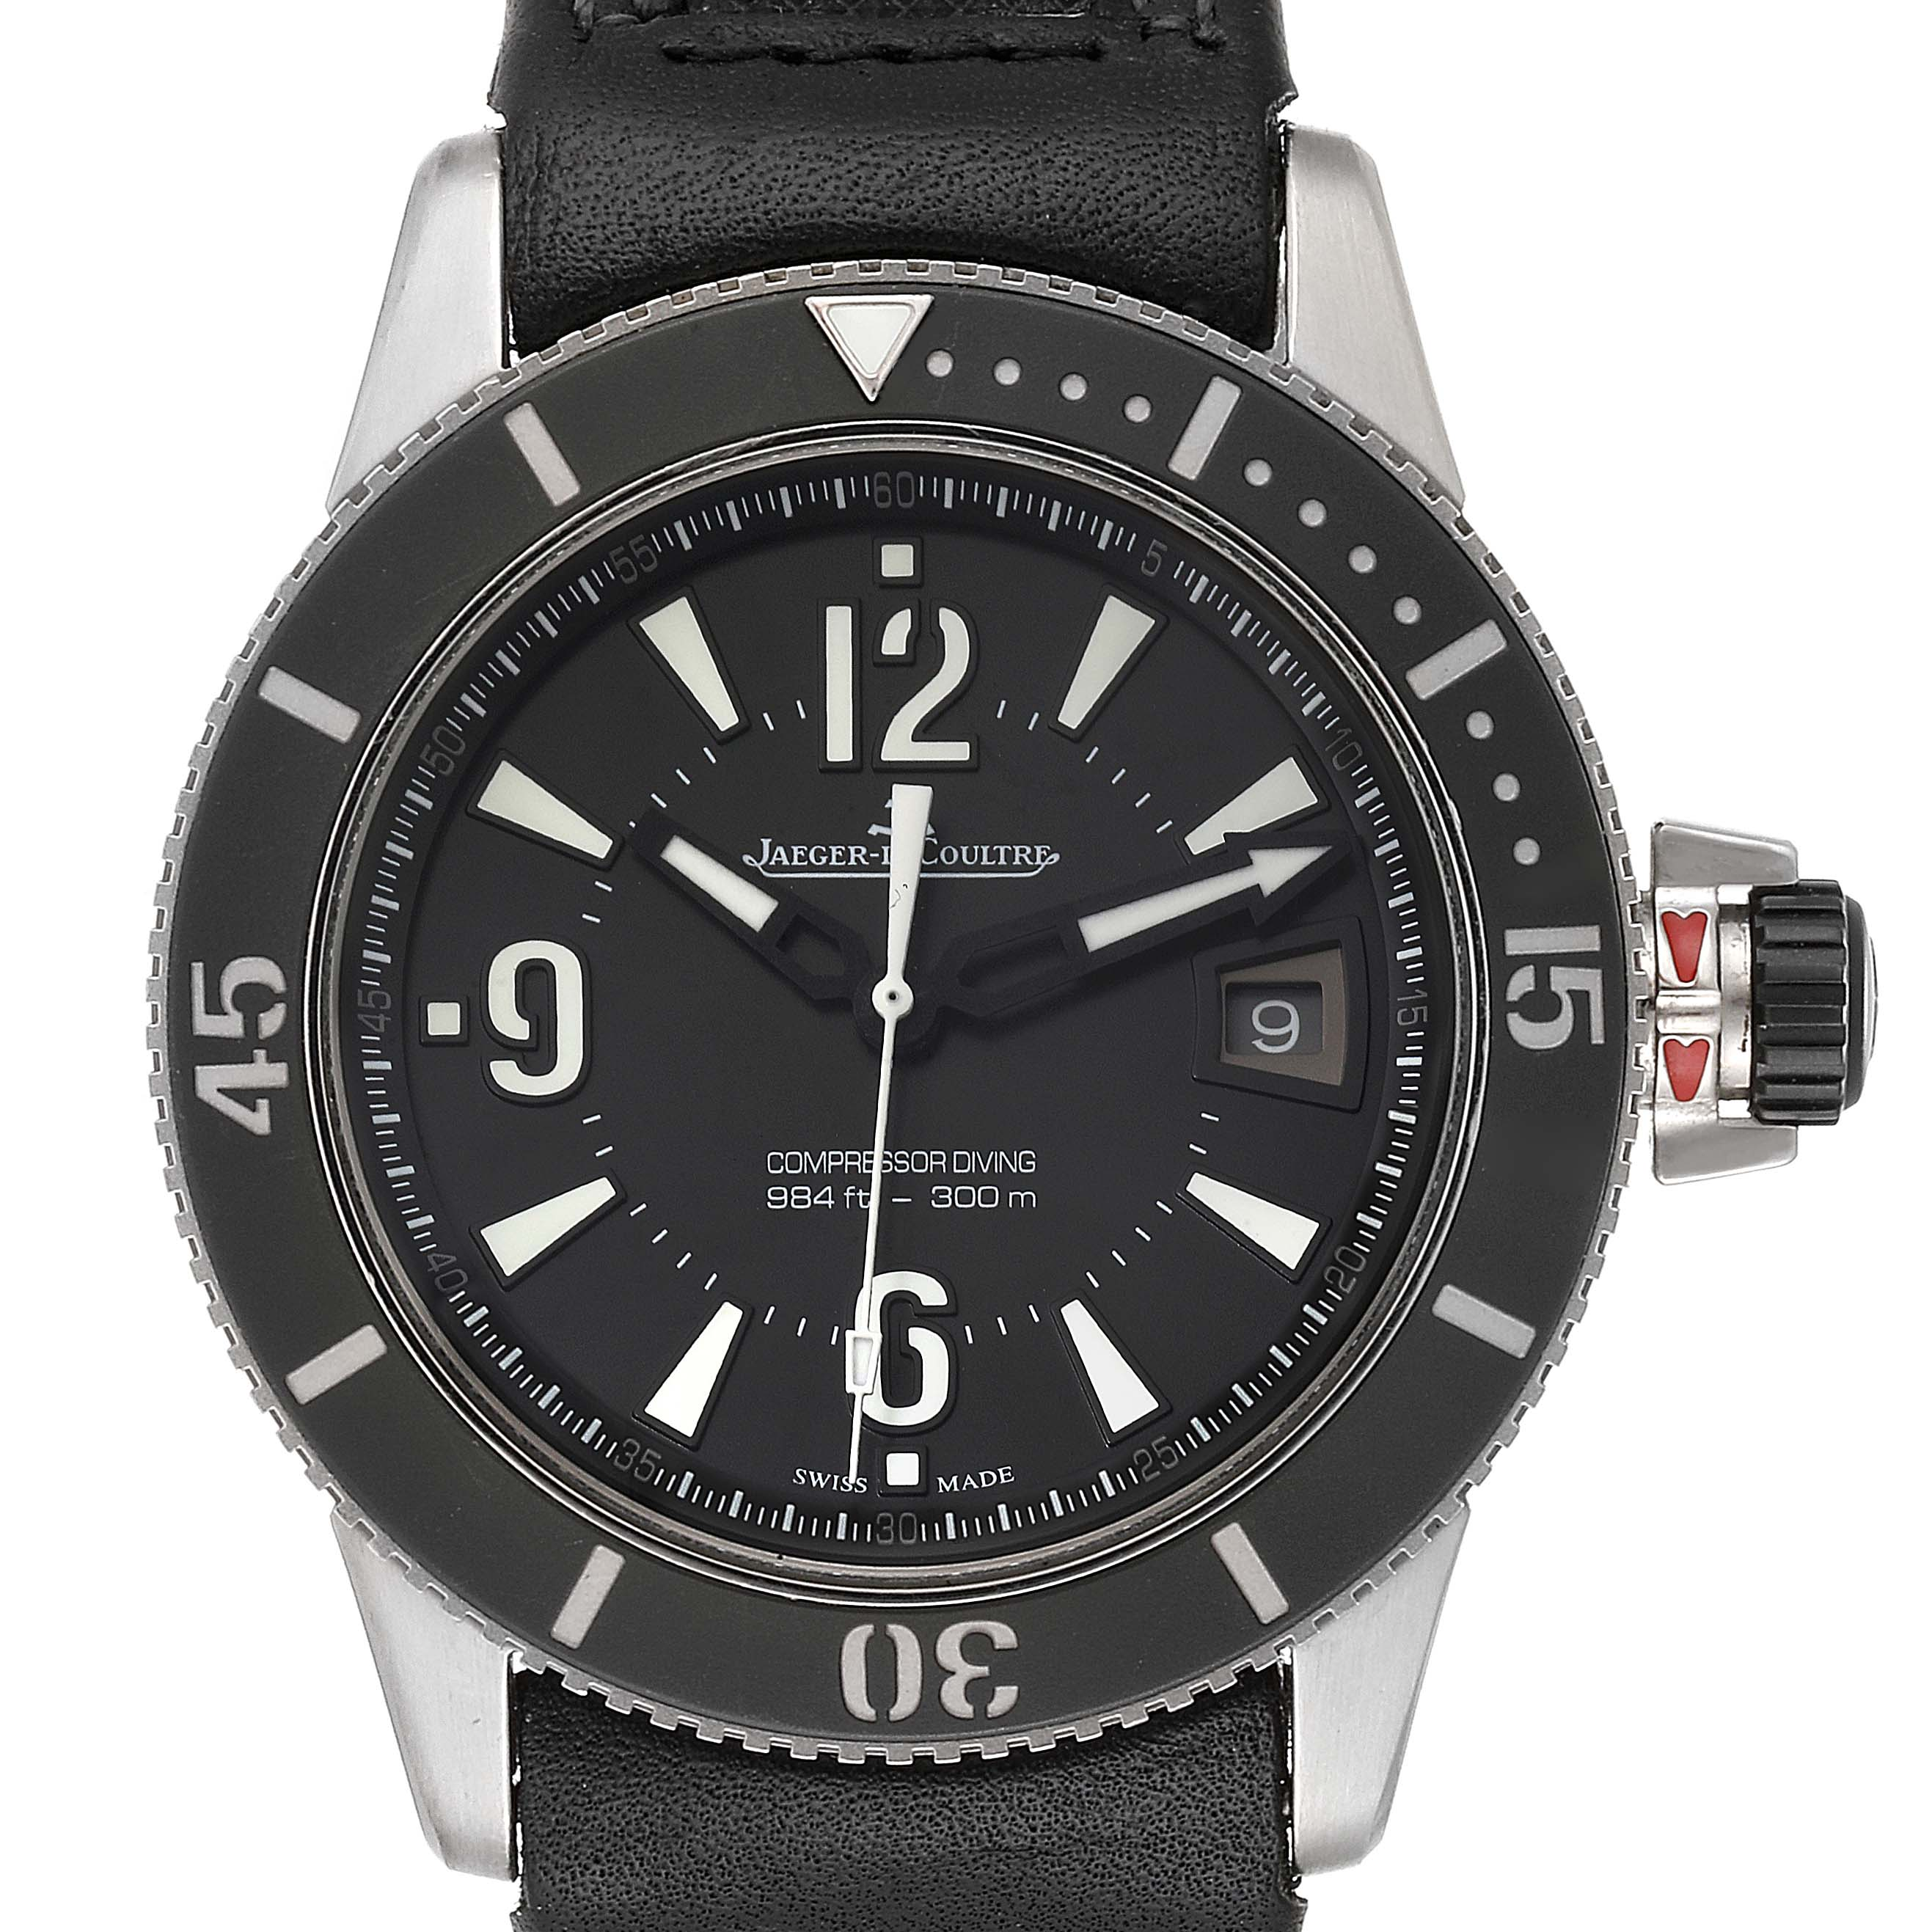 Photo of Jaeger Lecoultre Master Navy Seals Diving LE Watch 162.8.37 Q2018770